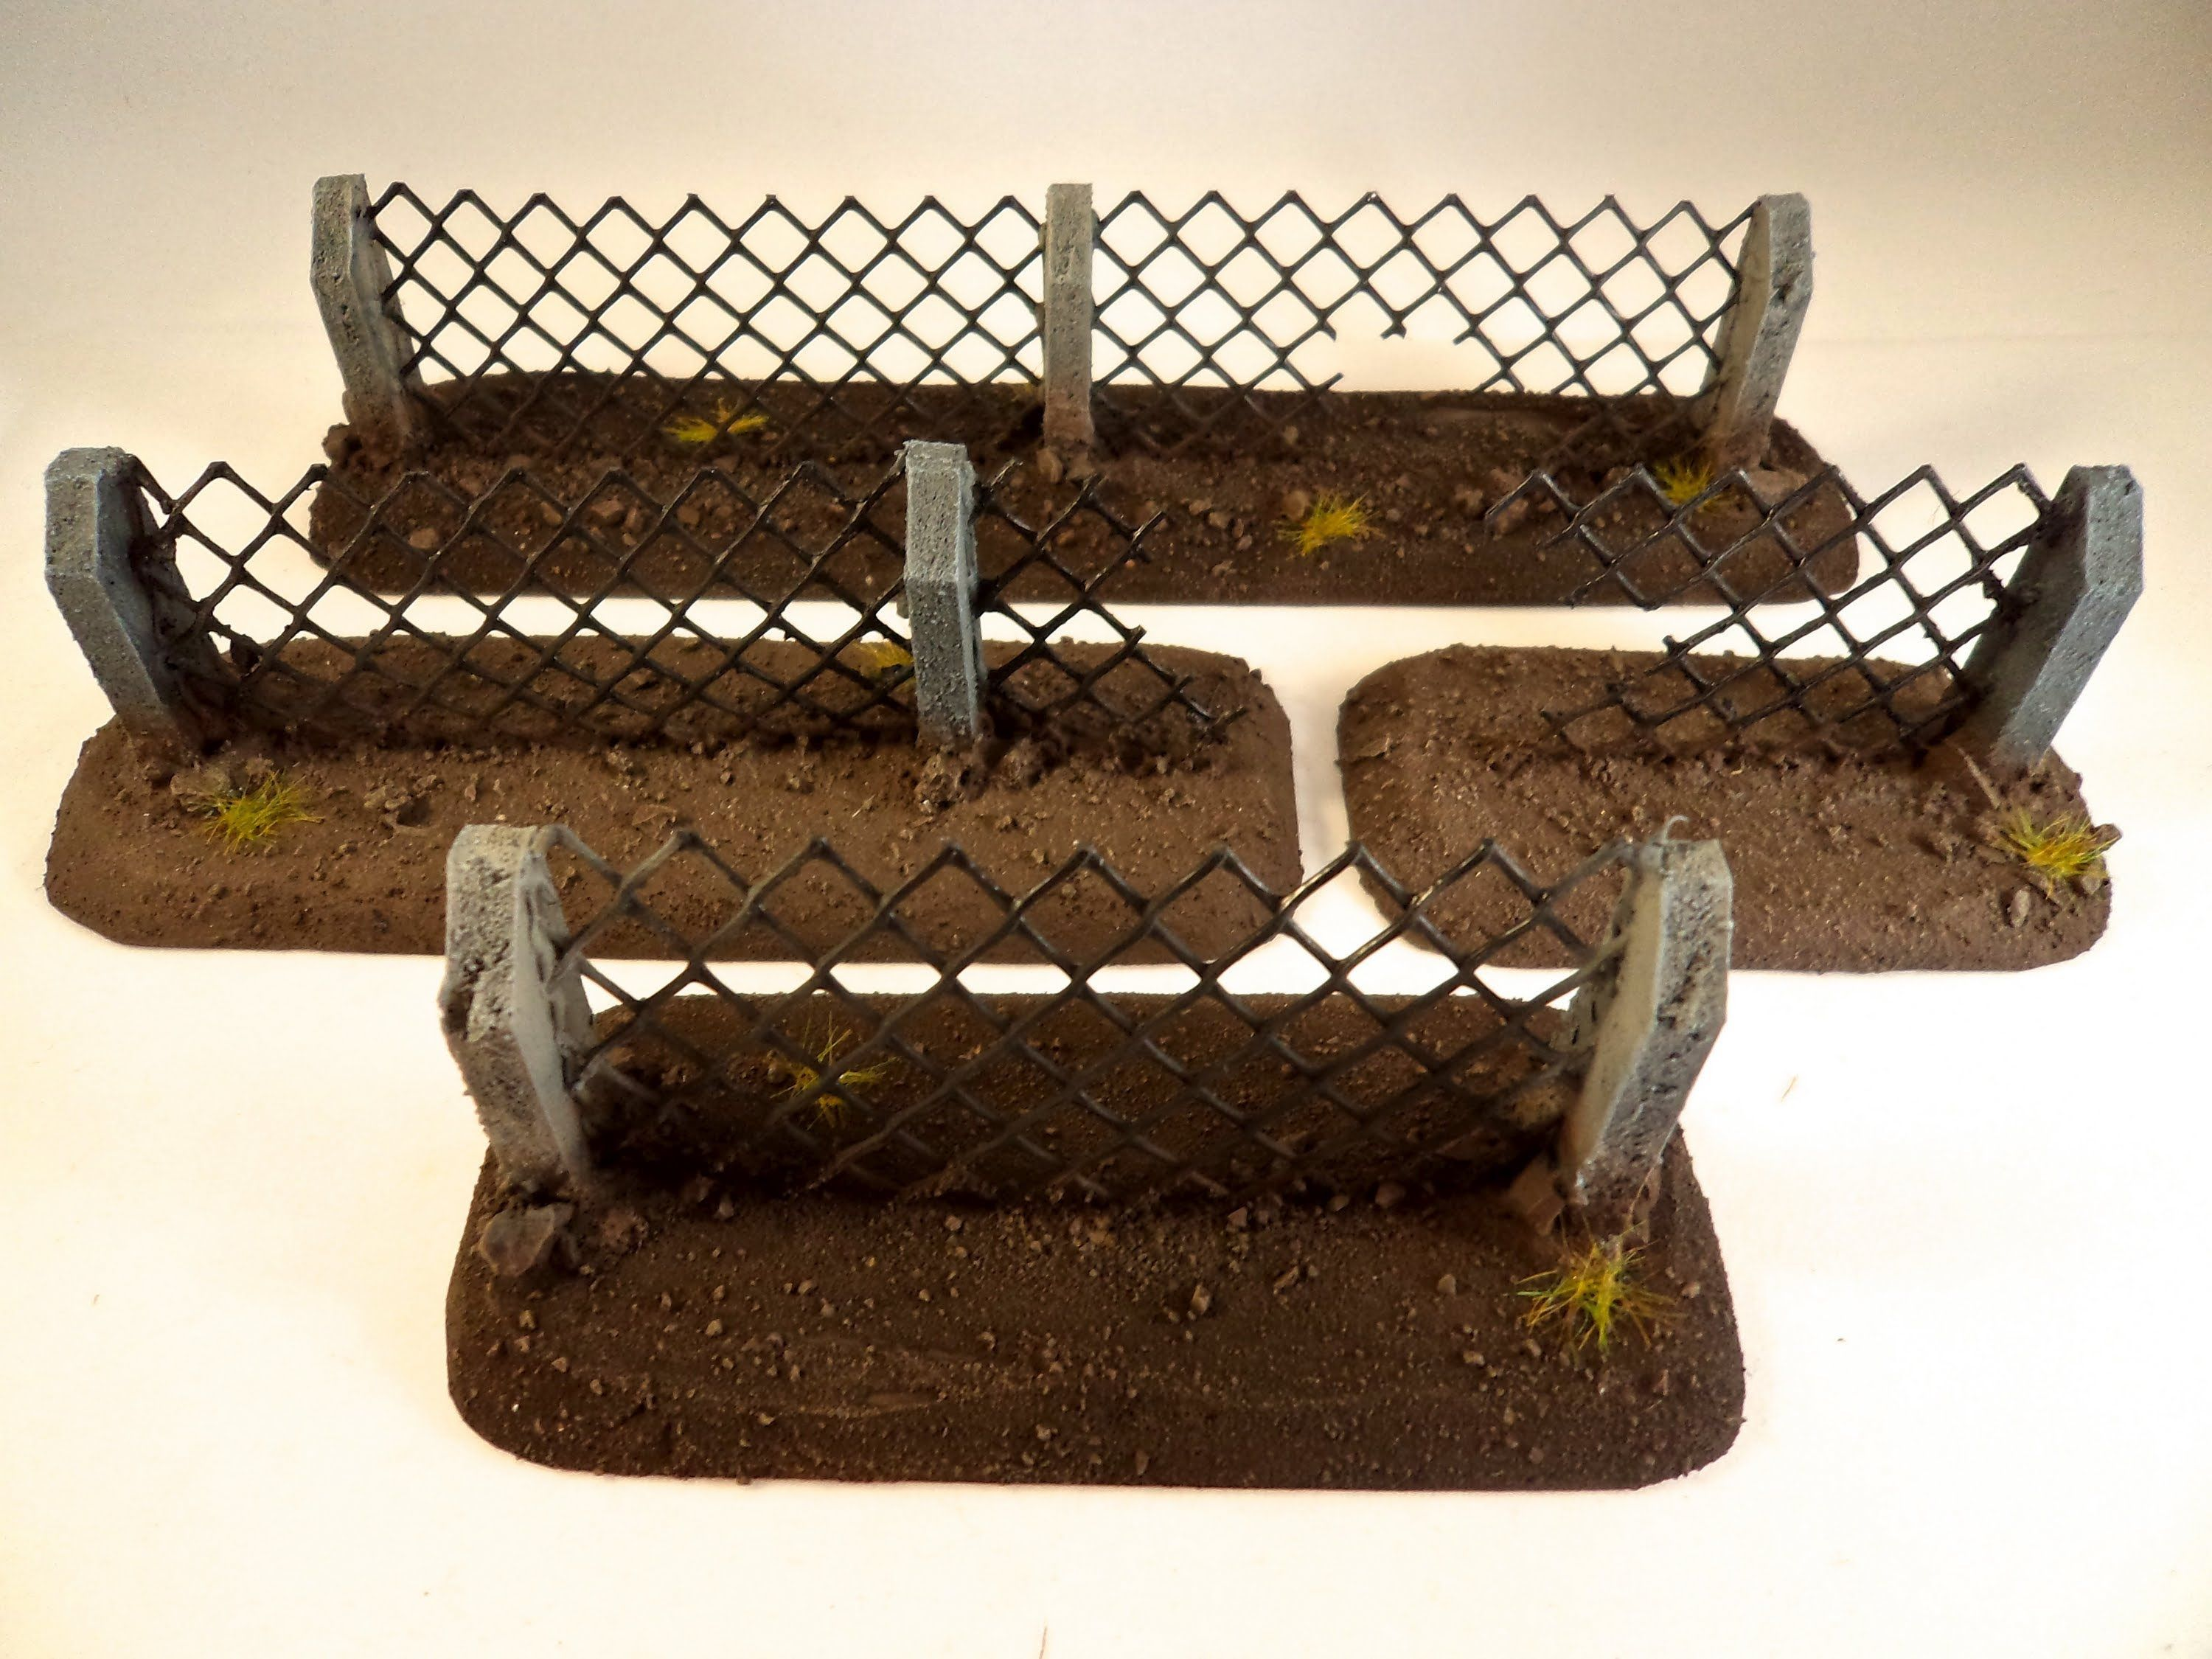 How to make Wargaming Security Fencing Terrain